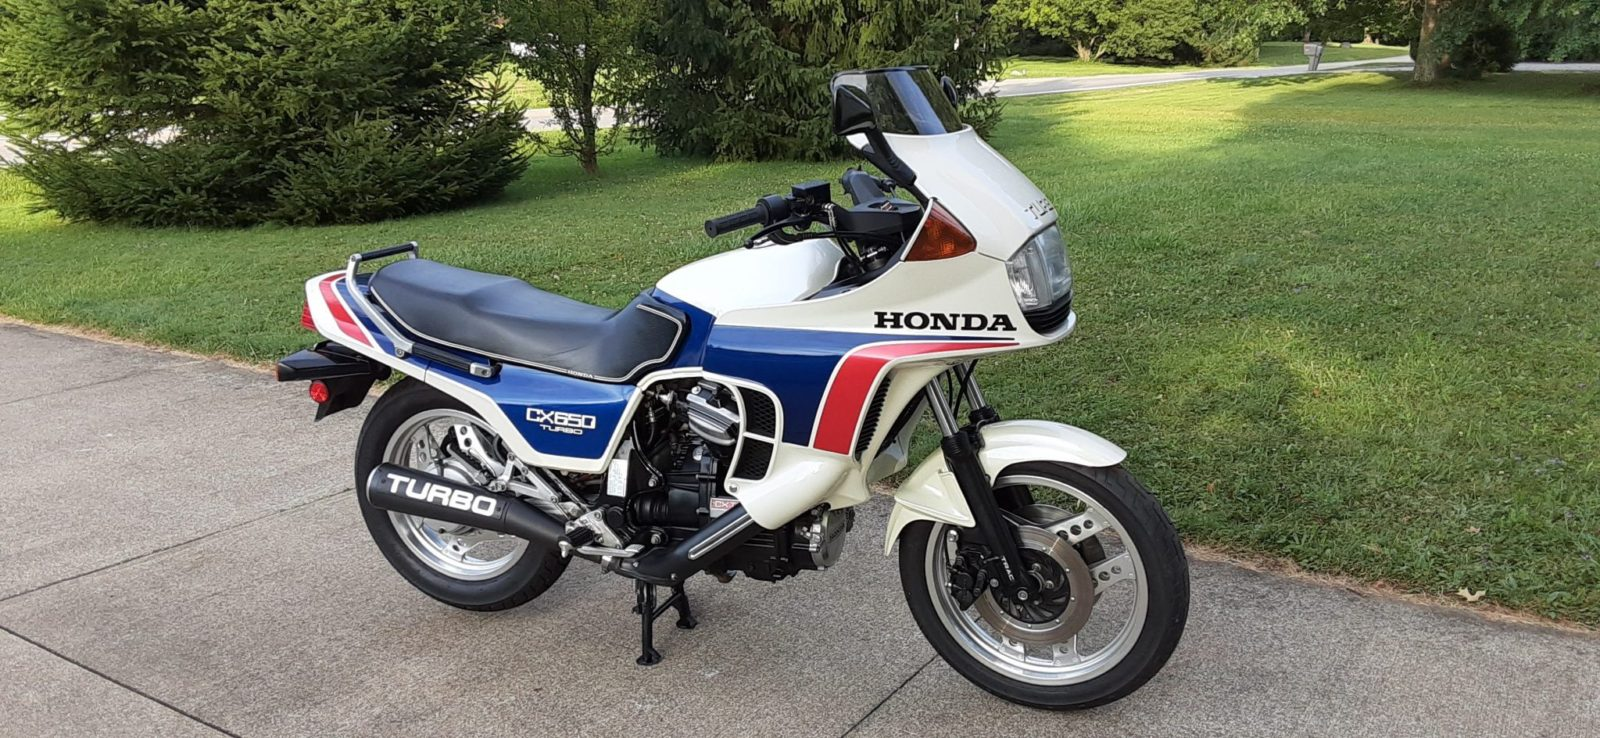 1983-honda-cx650-turbo-sits-on-upgraded-suspension-and-dunlop-footwear